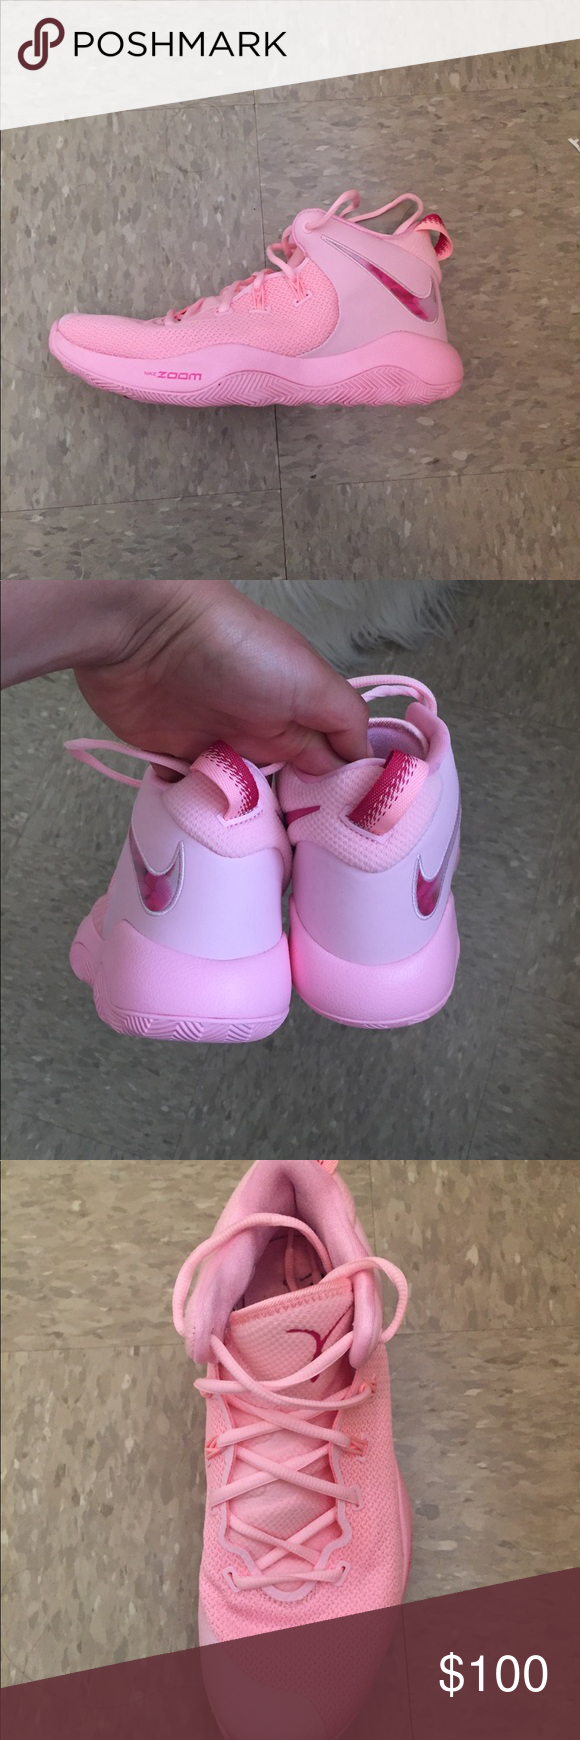 Nike Zoom Basketball Pink Game Shoes Pink Games Nike Zoom Shoes